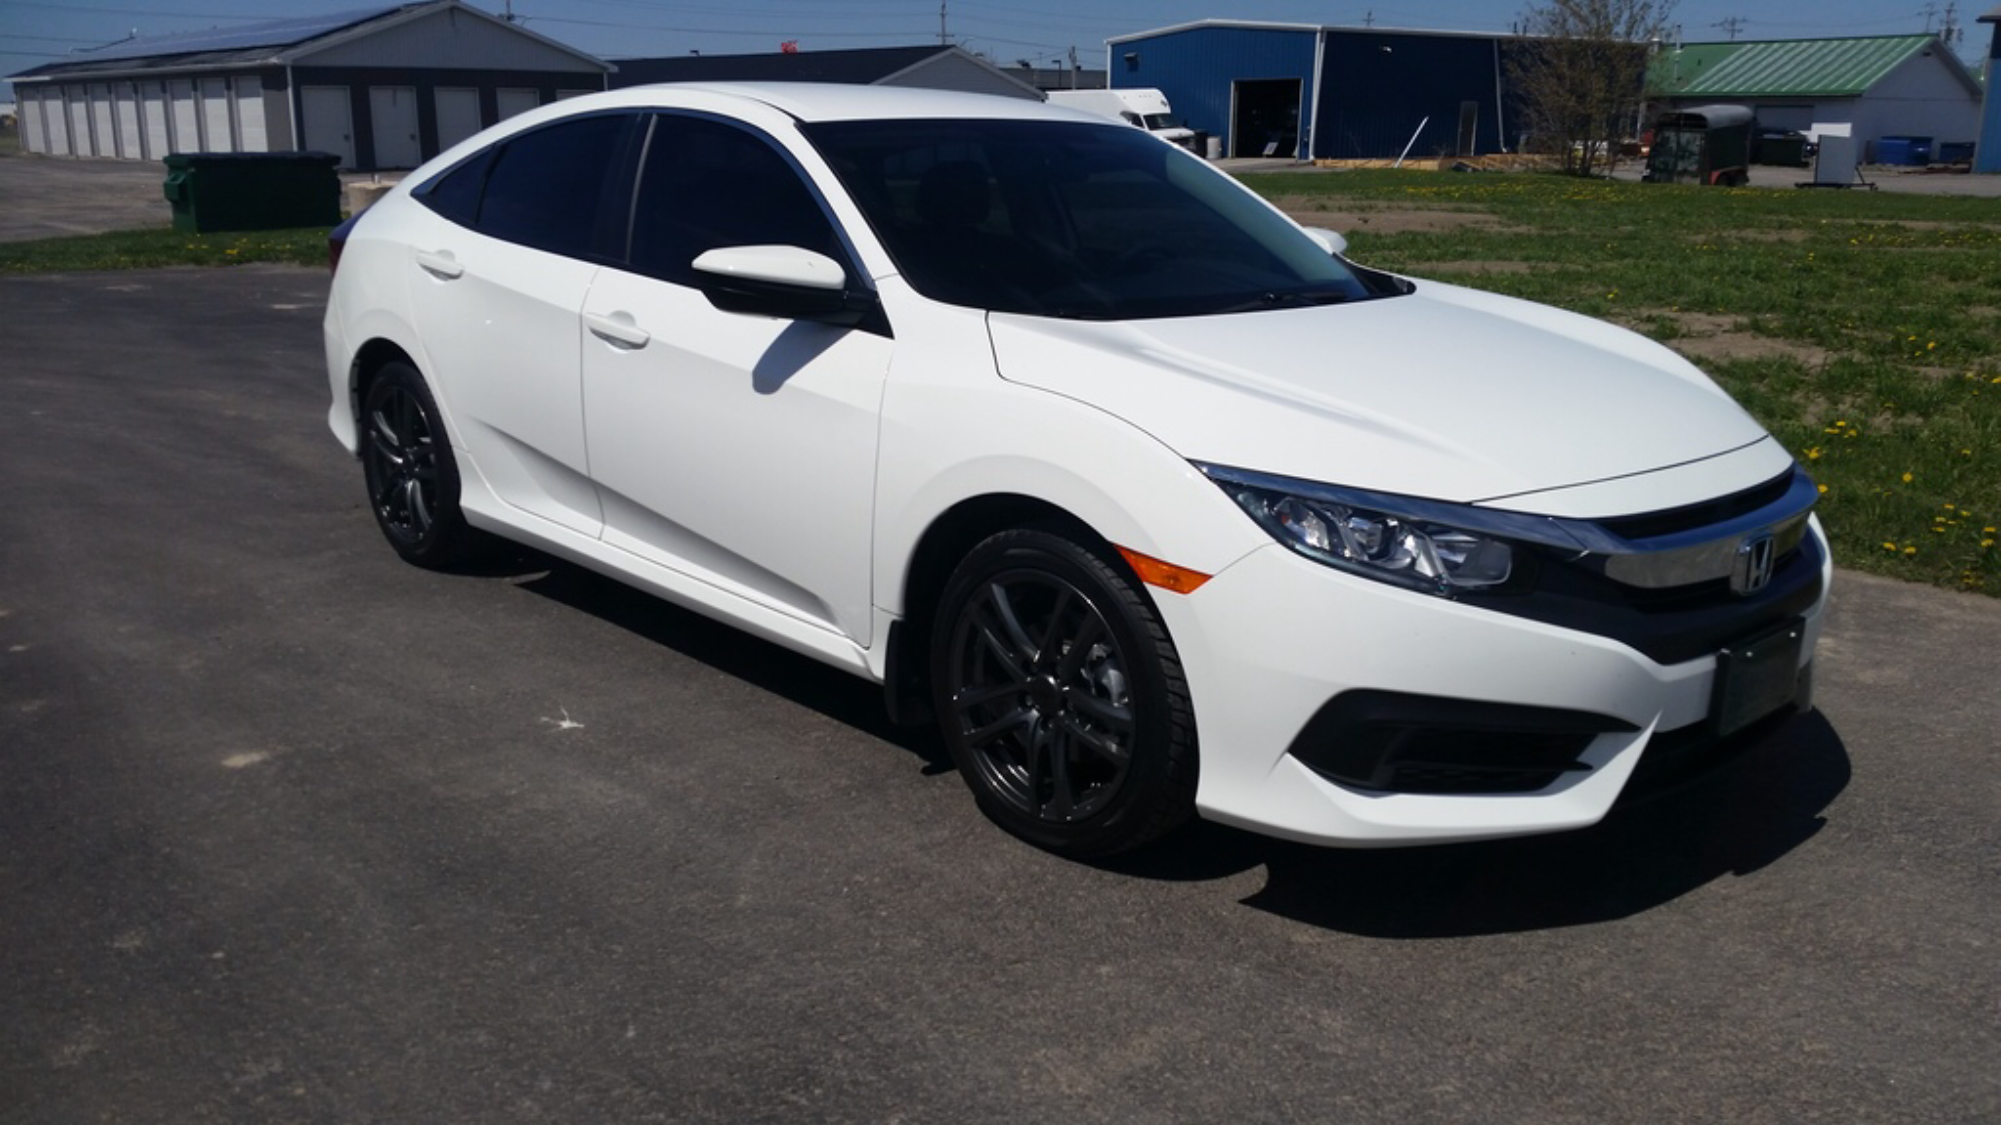 white 2016 honda civic with dark window tint and black. Black Bedroom Furniture Sets. Home Design Ideas